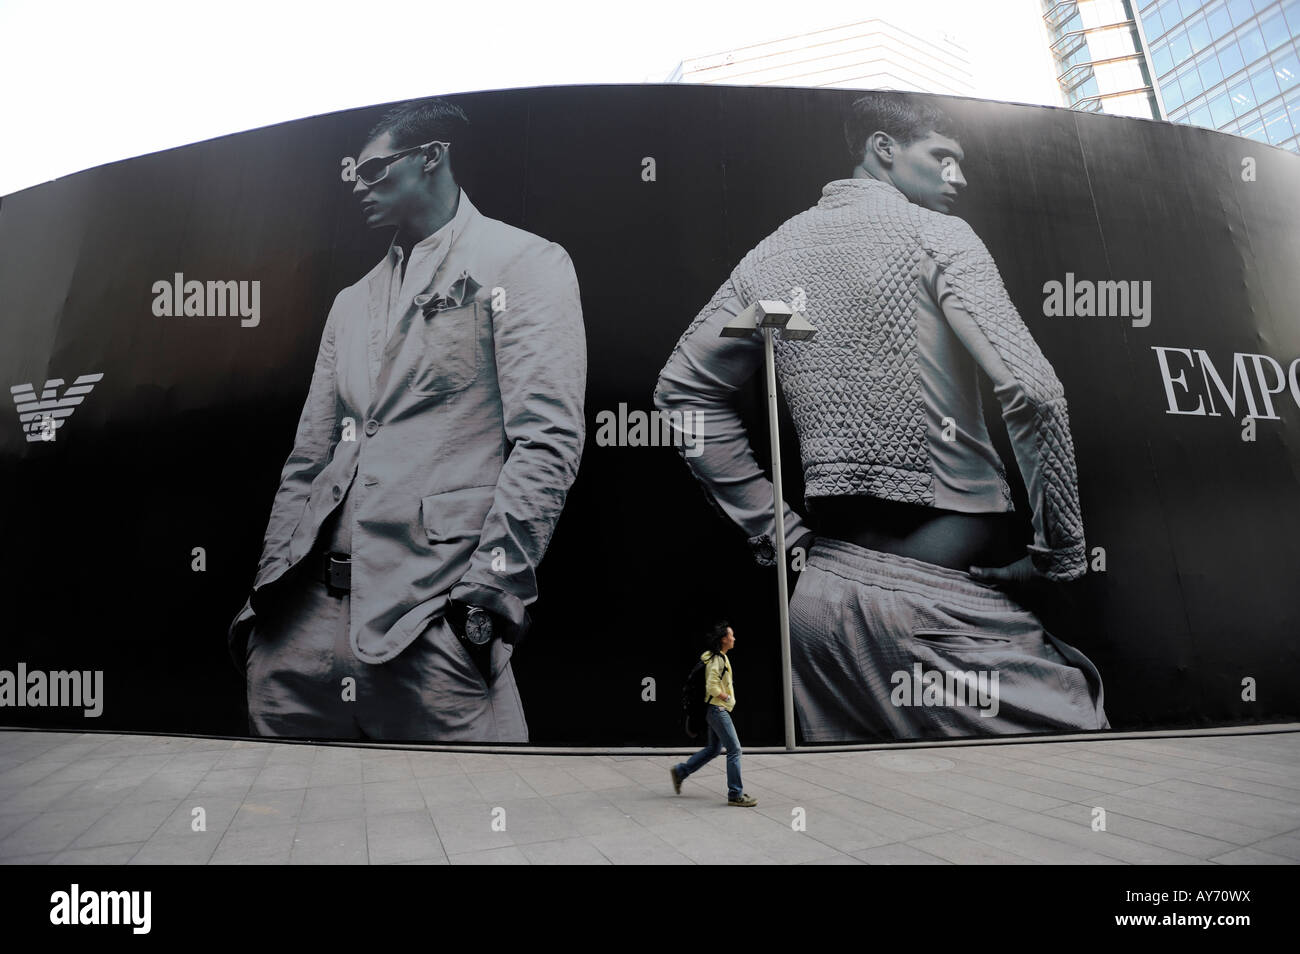 A migrant worker walks past a huge billboard of Emporio Armani in Beijing CBD, China. 03-Apr-2008 - Stock Image